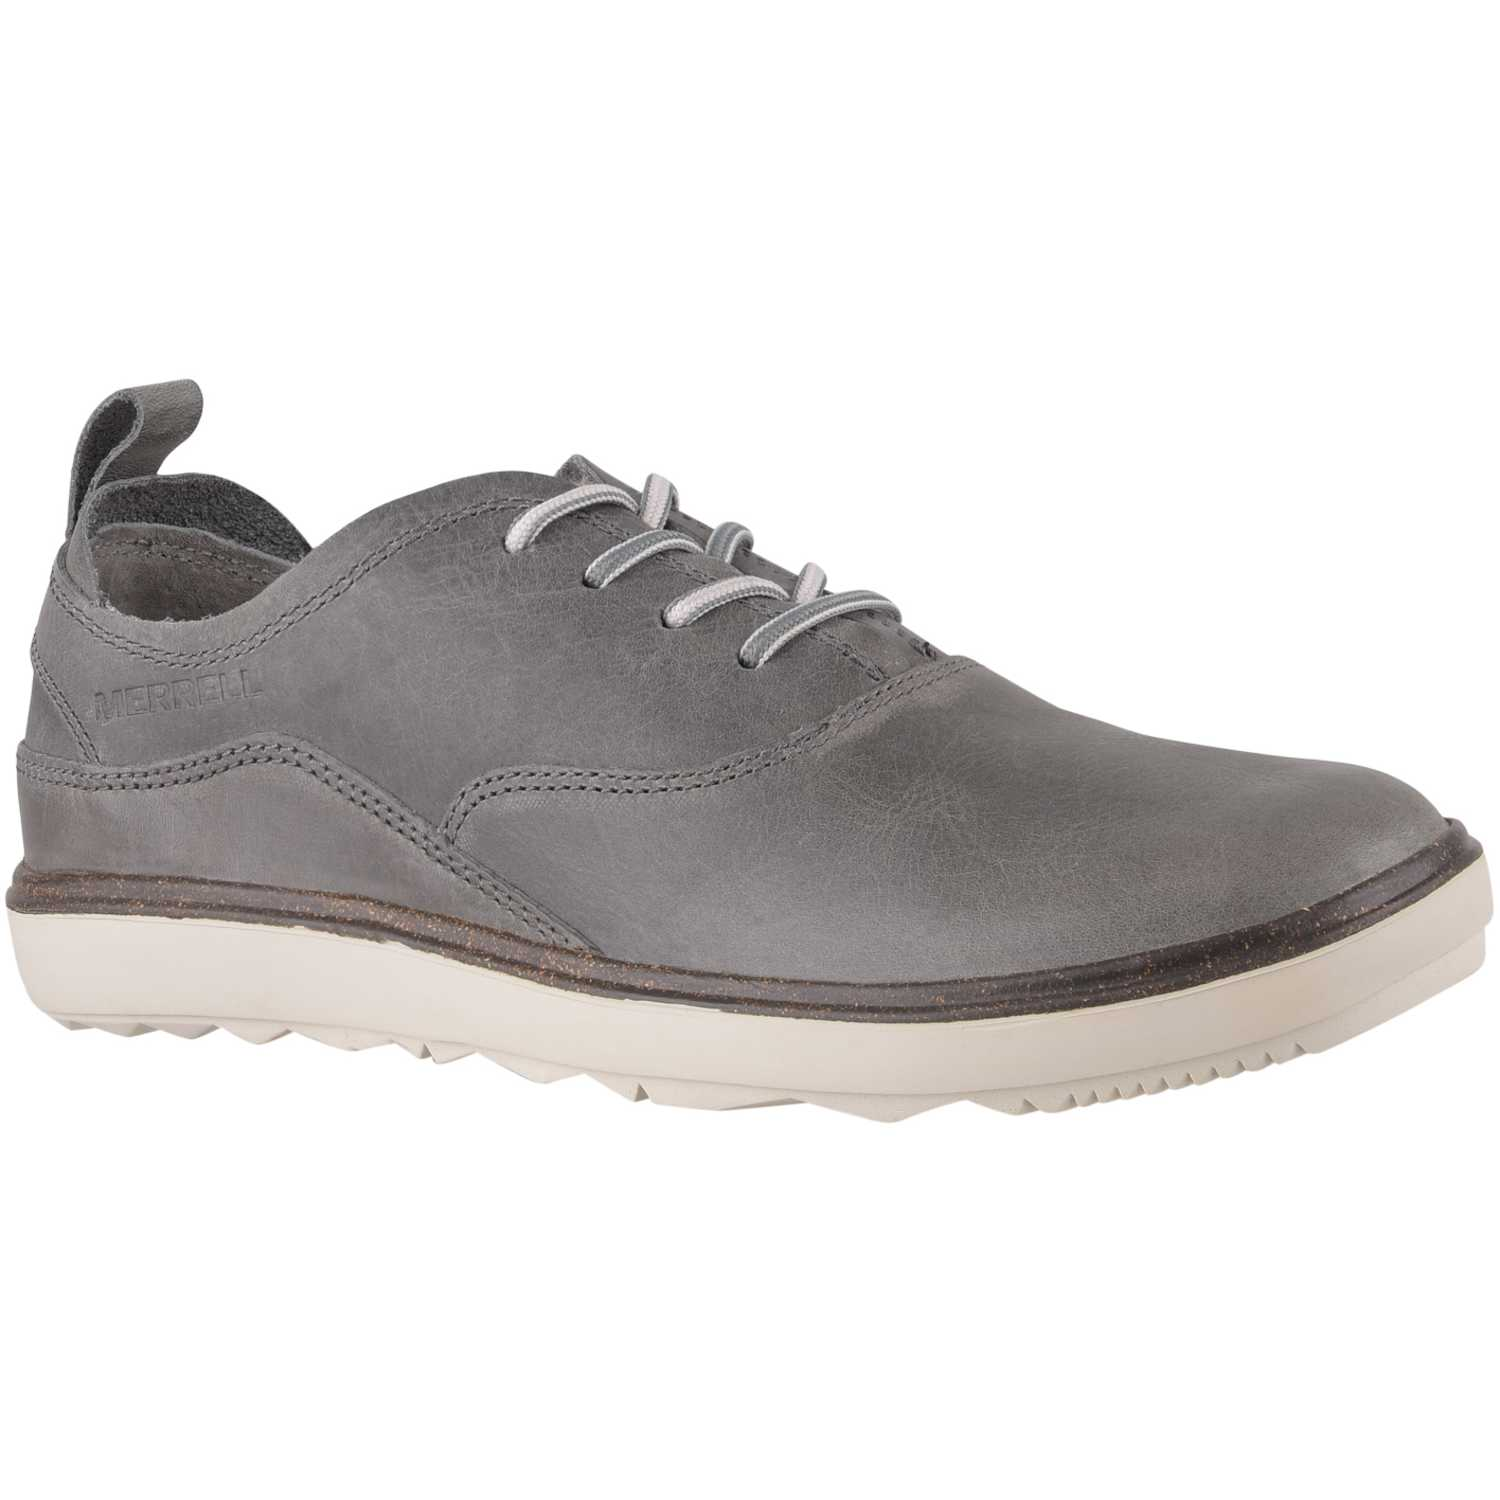 Cuña de Mujer Merrell Gris / blanco around town lace